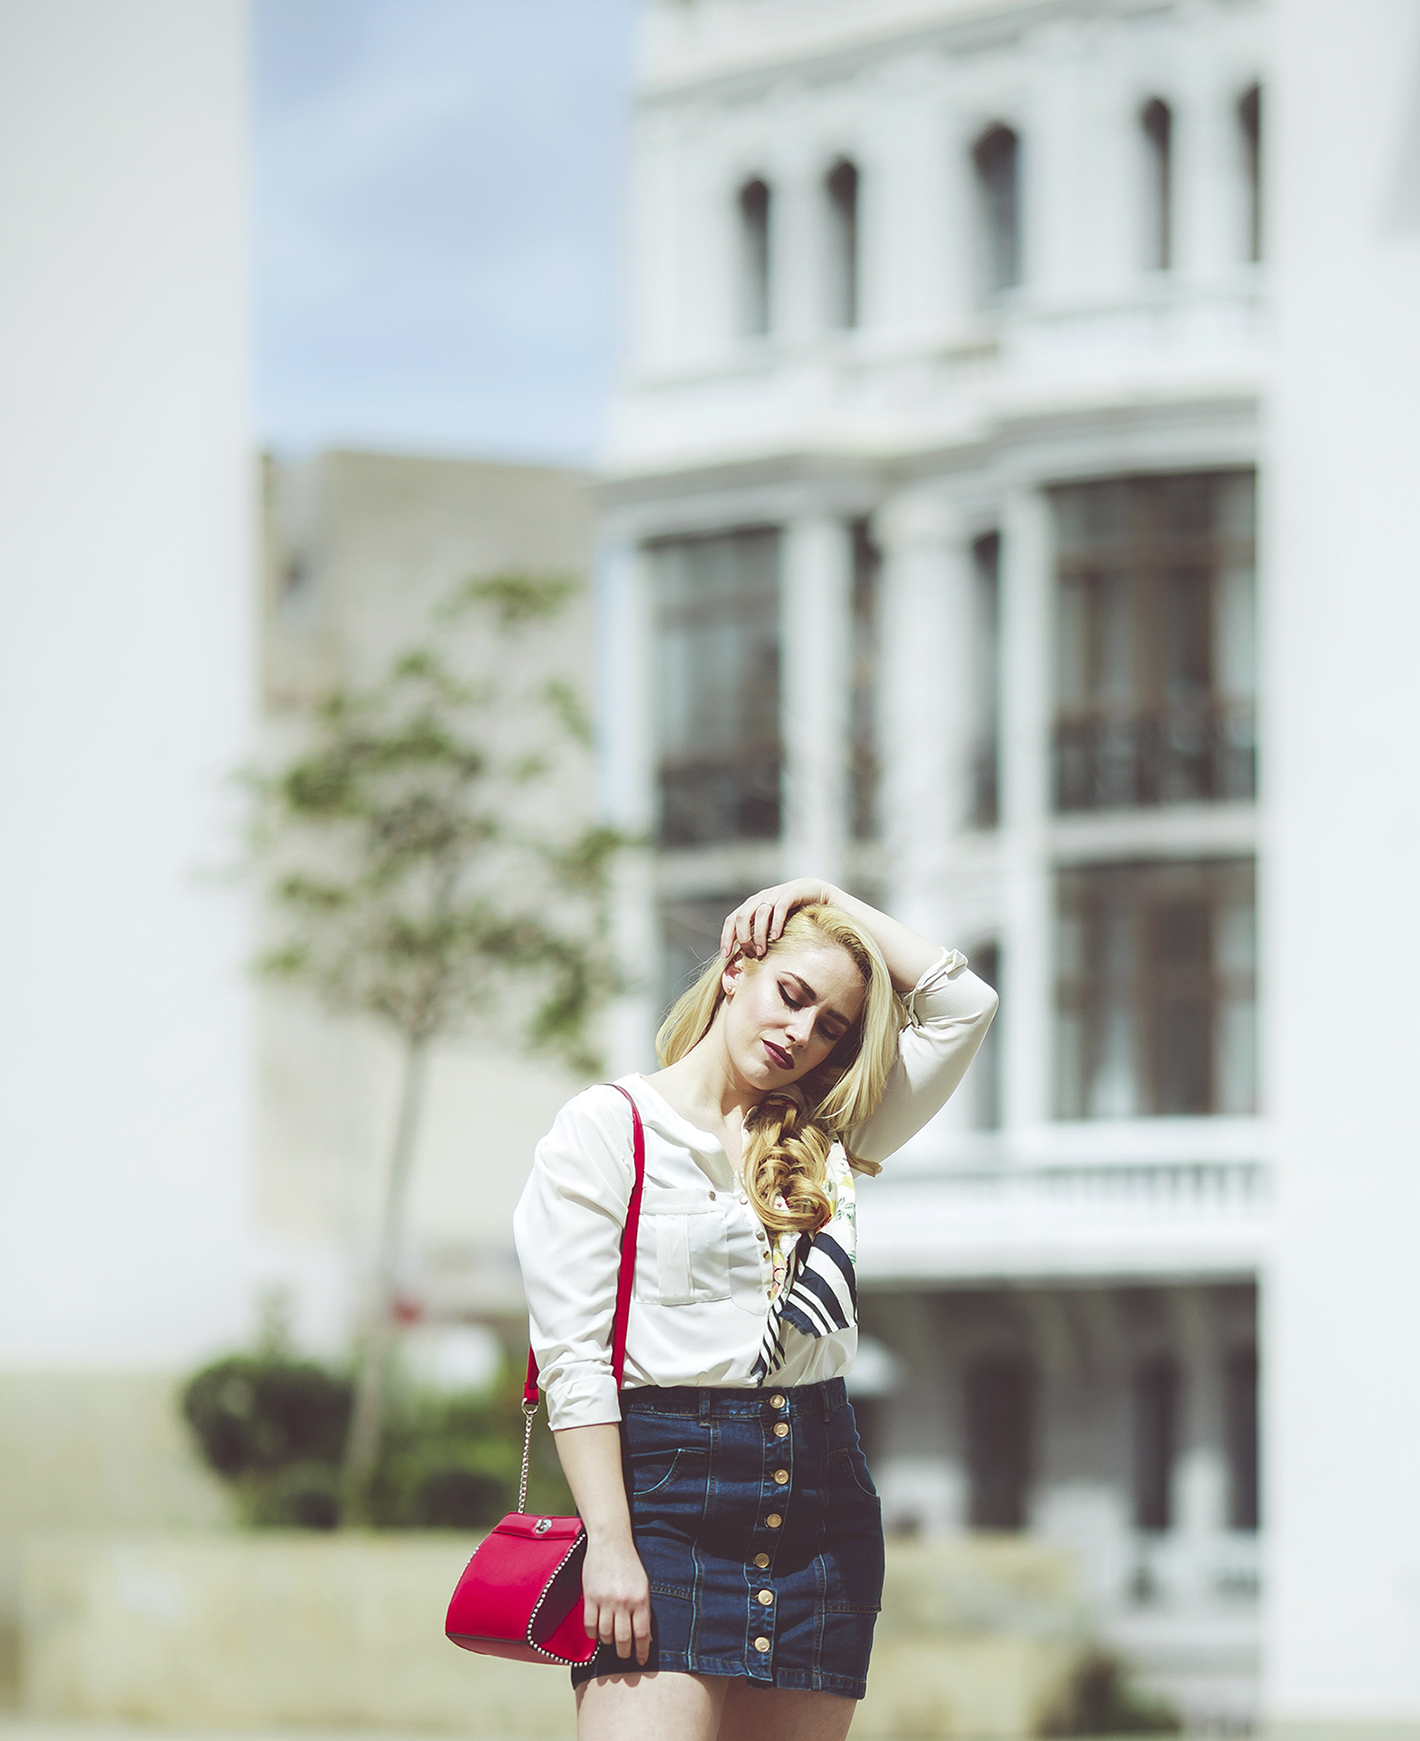 Patripaan spring look with Stradivarius denim skirt, white shirt and red bag.